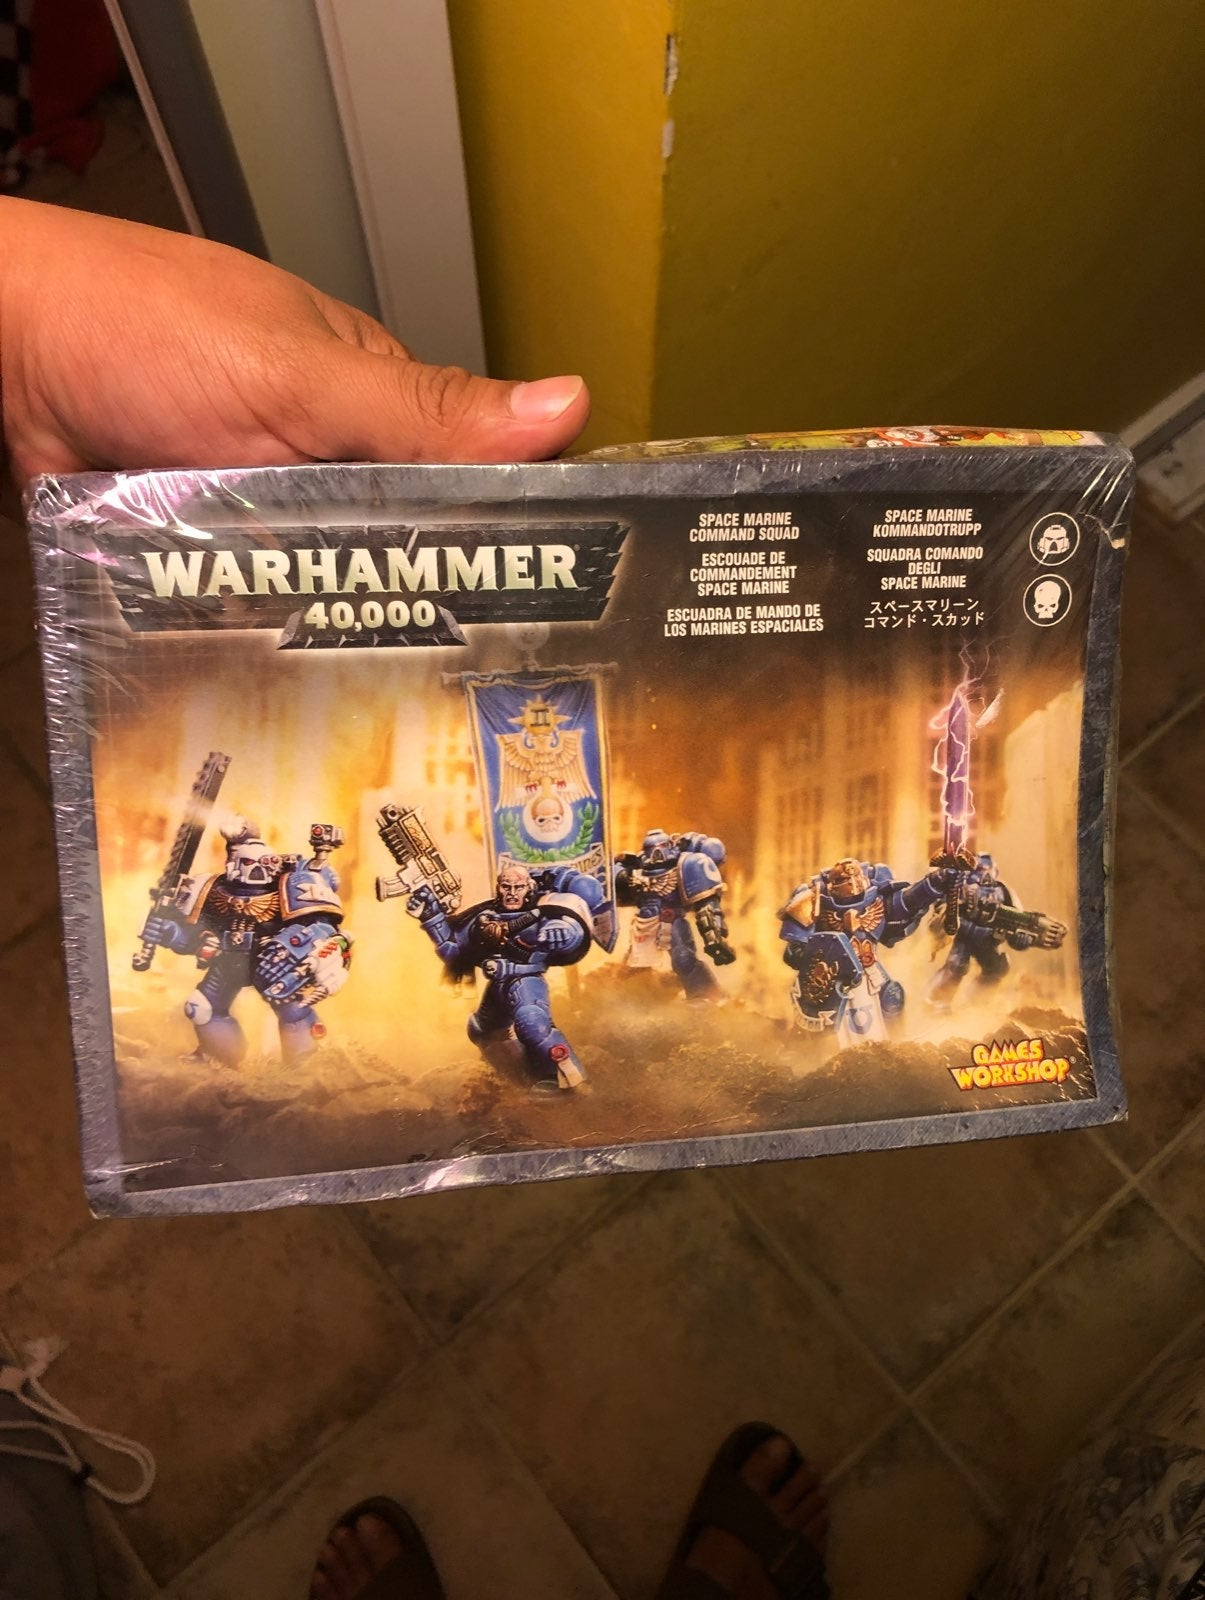 Warhammer 40000 in box